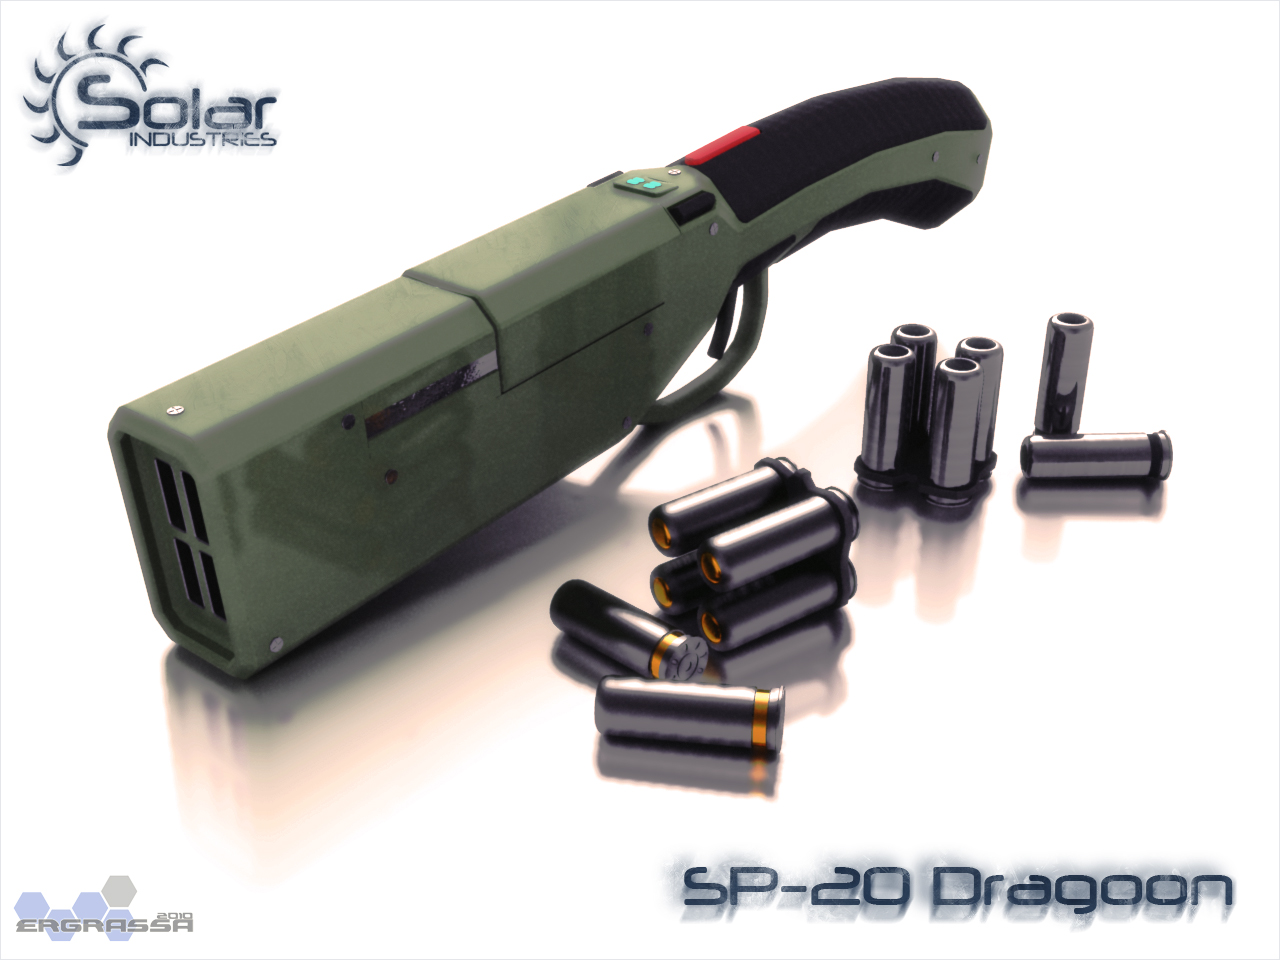 SP-20 Dragoon by Ergrassa